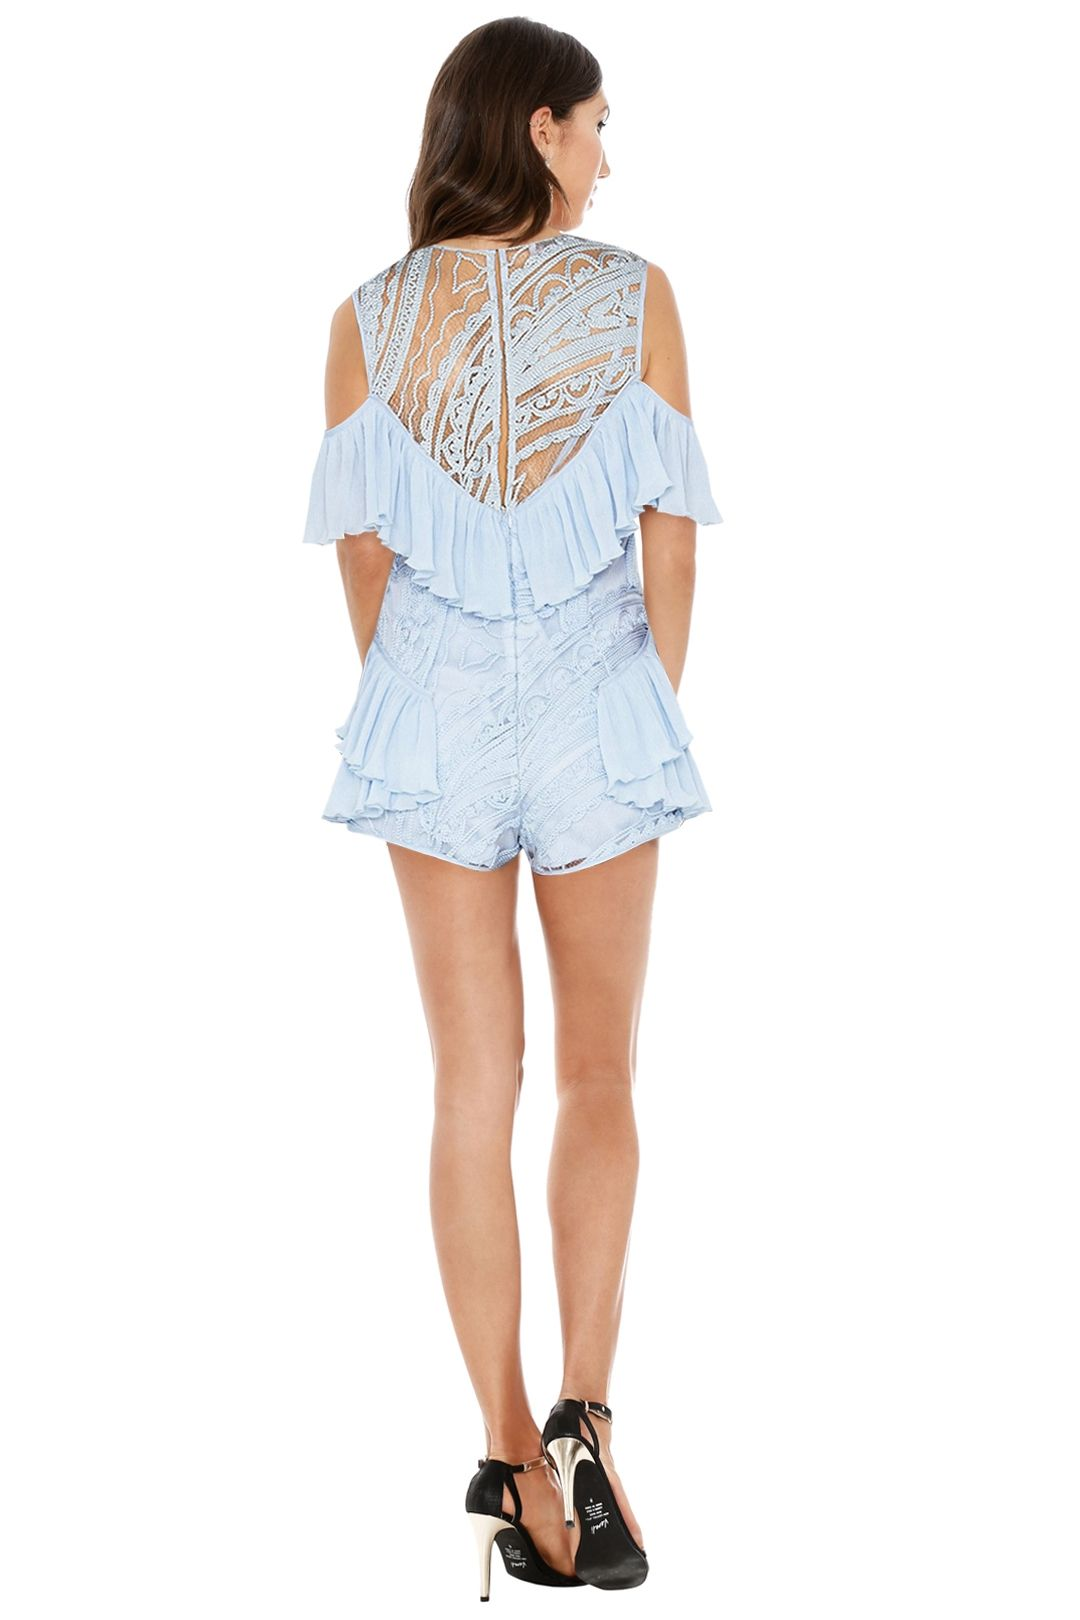 Alice McCall - You're so young So Have Fun Girl - Ice Blue - Back